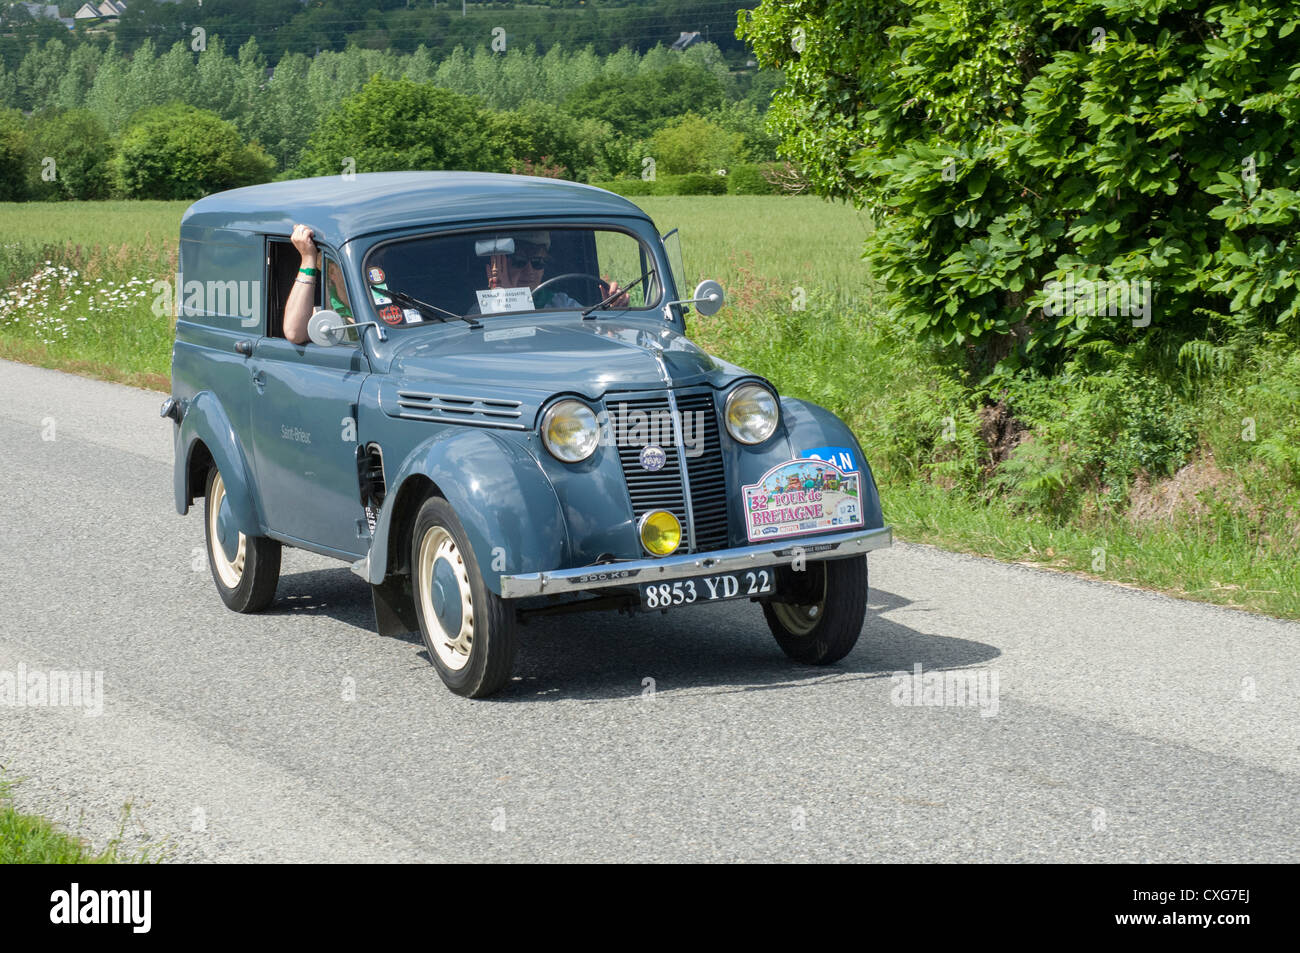 renault juva 4 camionnette of 1952 in the tour de bretagne france stock photo royalty free. Black Bedroom Furniture Sets. Home Design Ideas